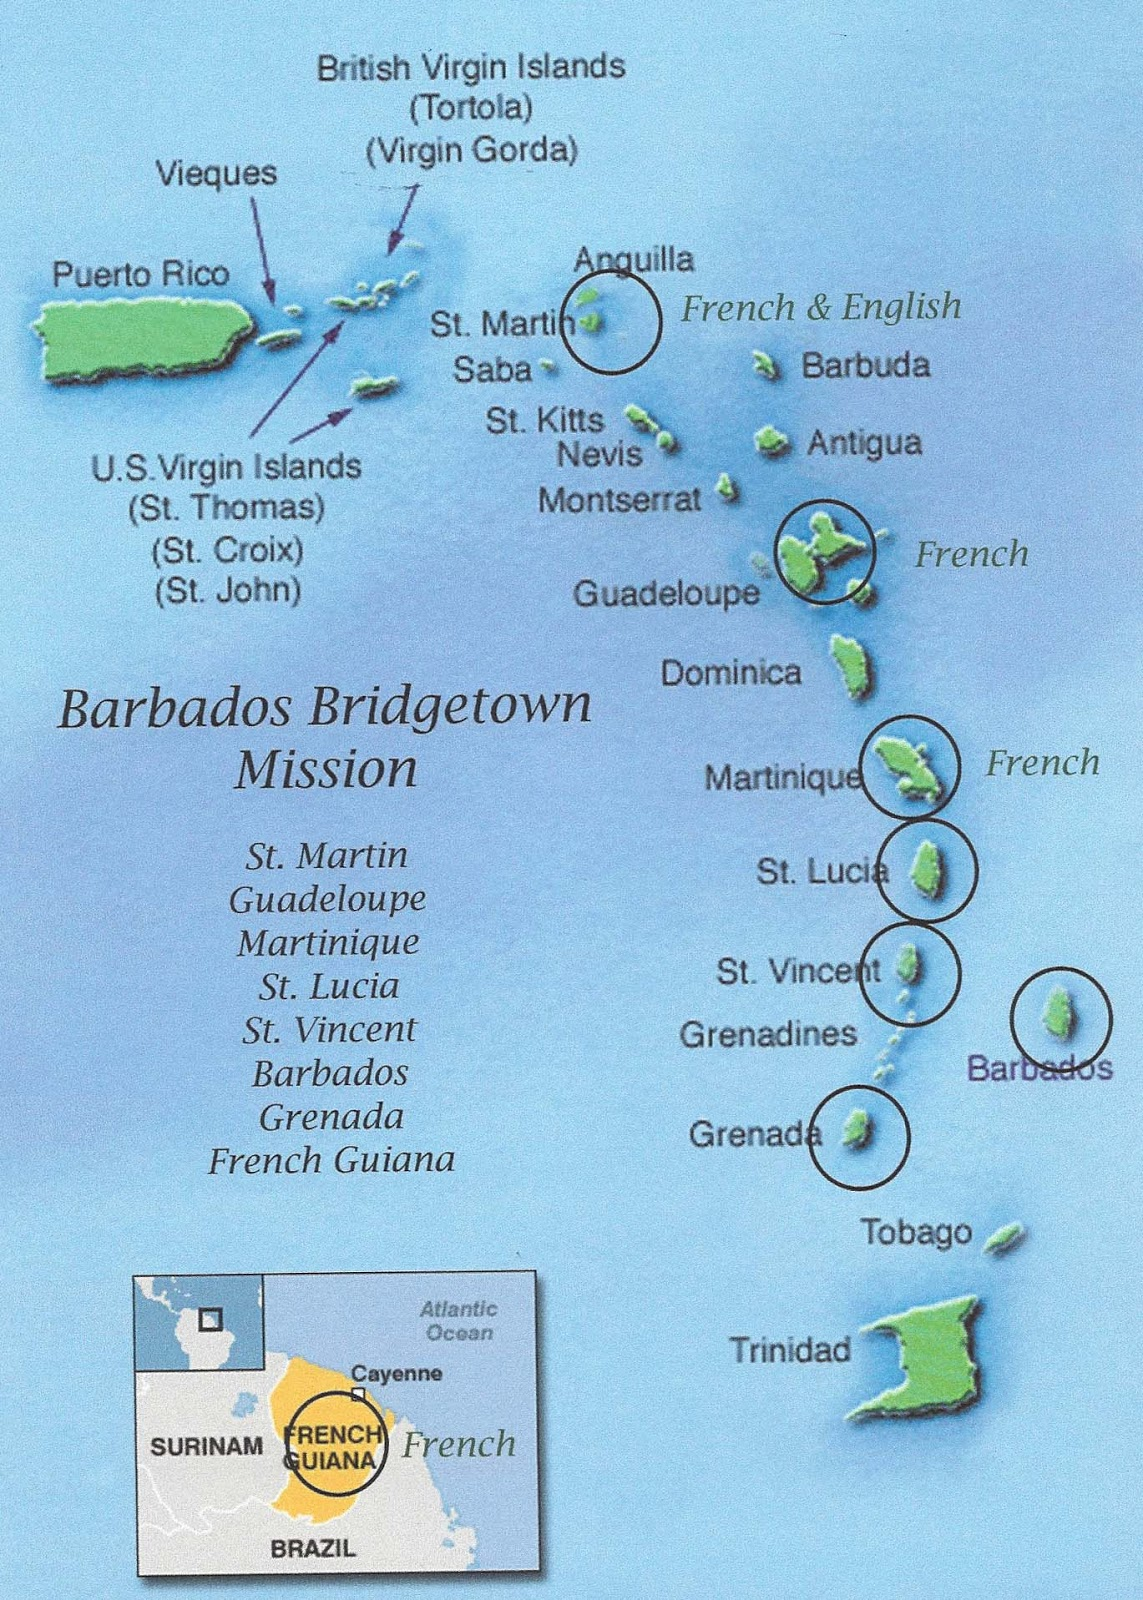 so it looks like my new boundaries will include the following caribbean islands st martin